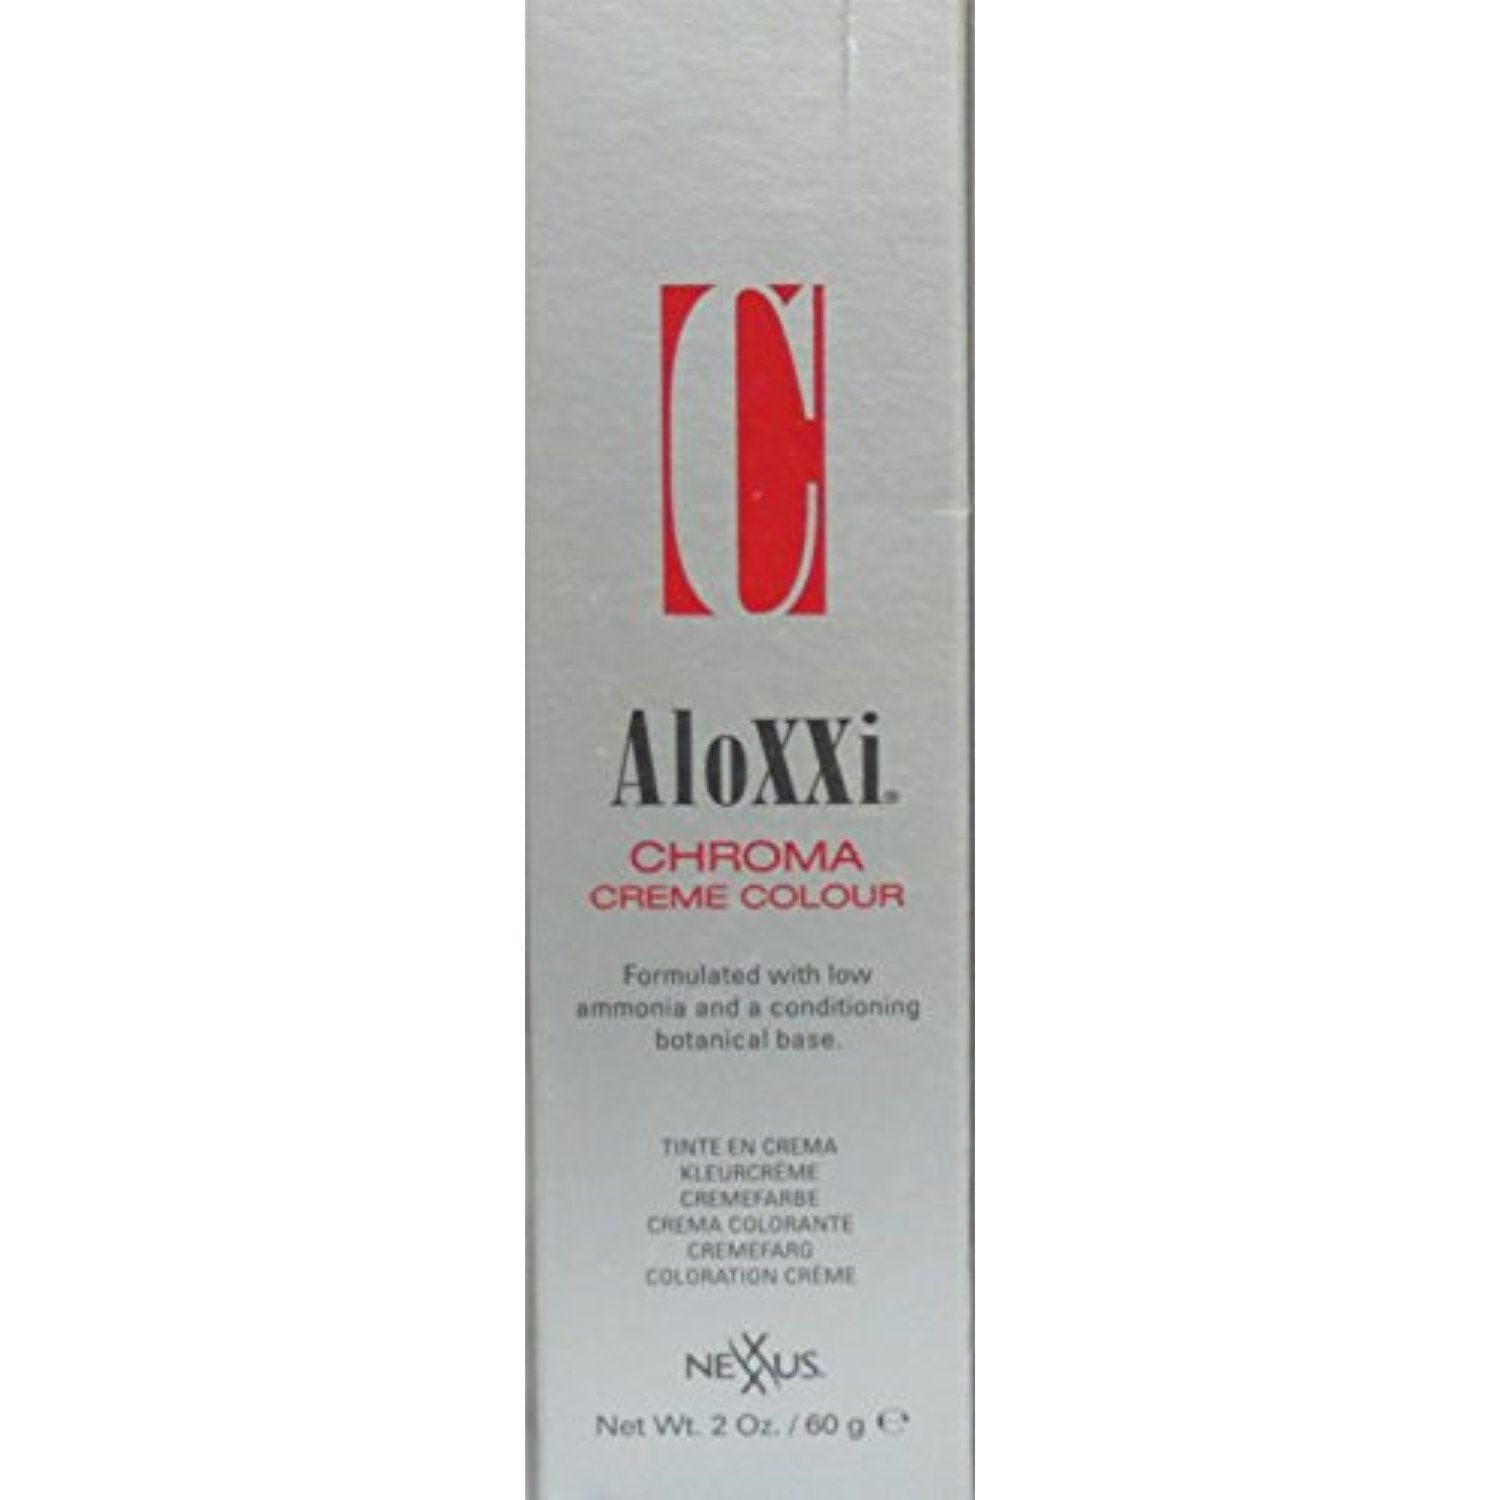 Nexxus Aloxxi Chroma Creme Hair Colour 2 Oz 60 G 8b Sahara Beigeq Check Out This Great Product This Is An Affiliate Link Creme Color Nexxus Color